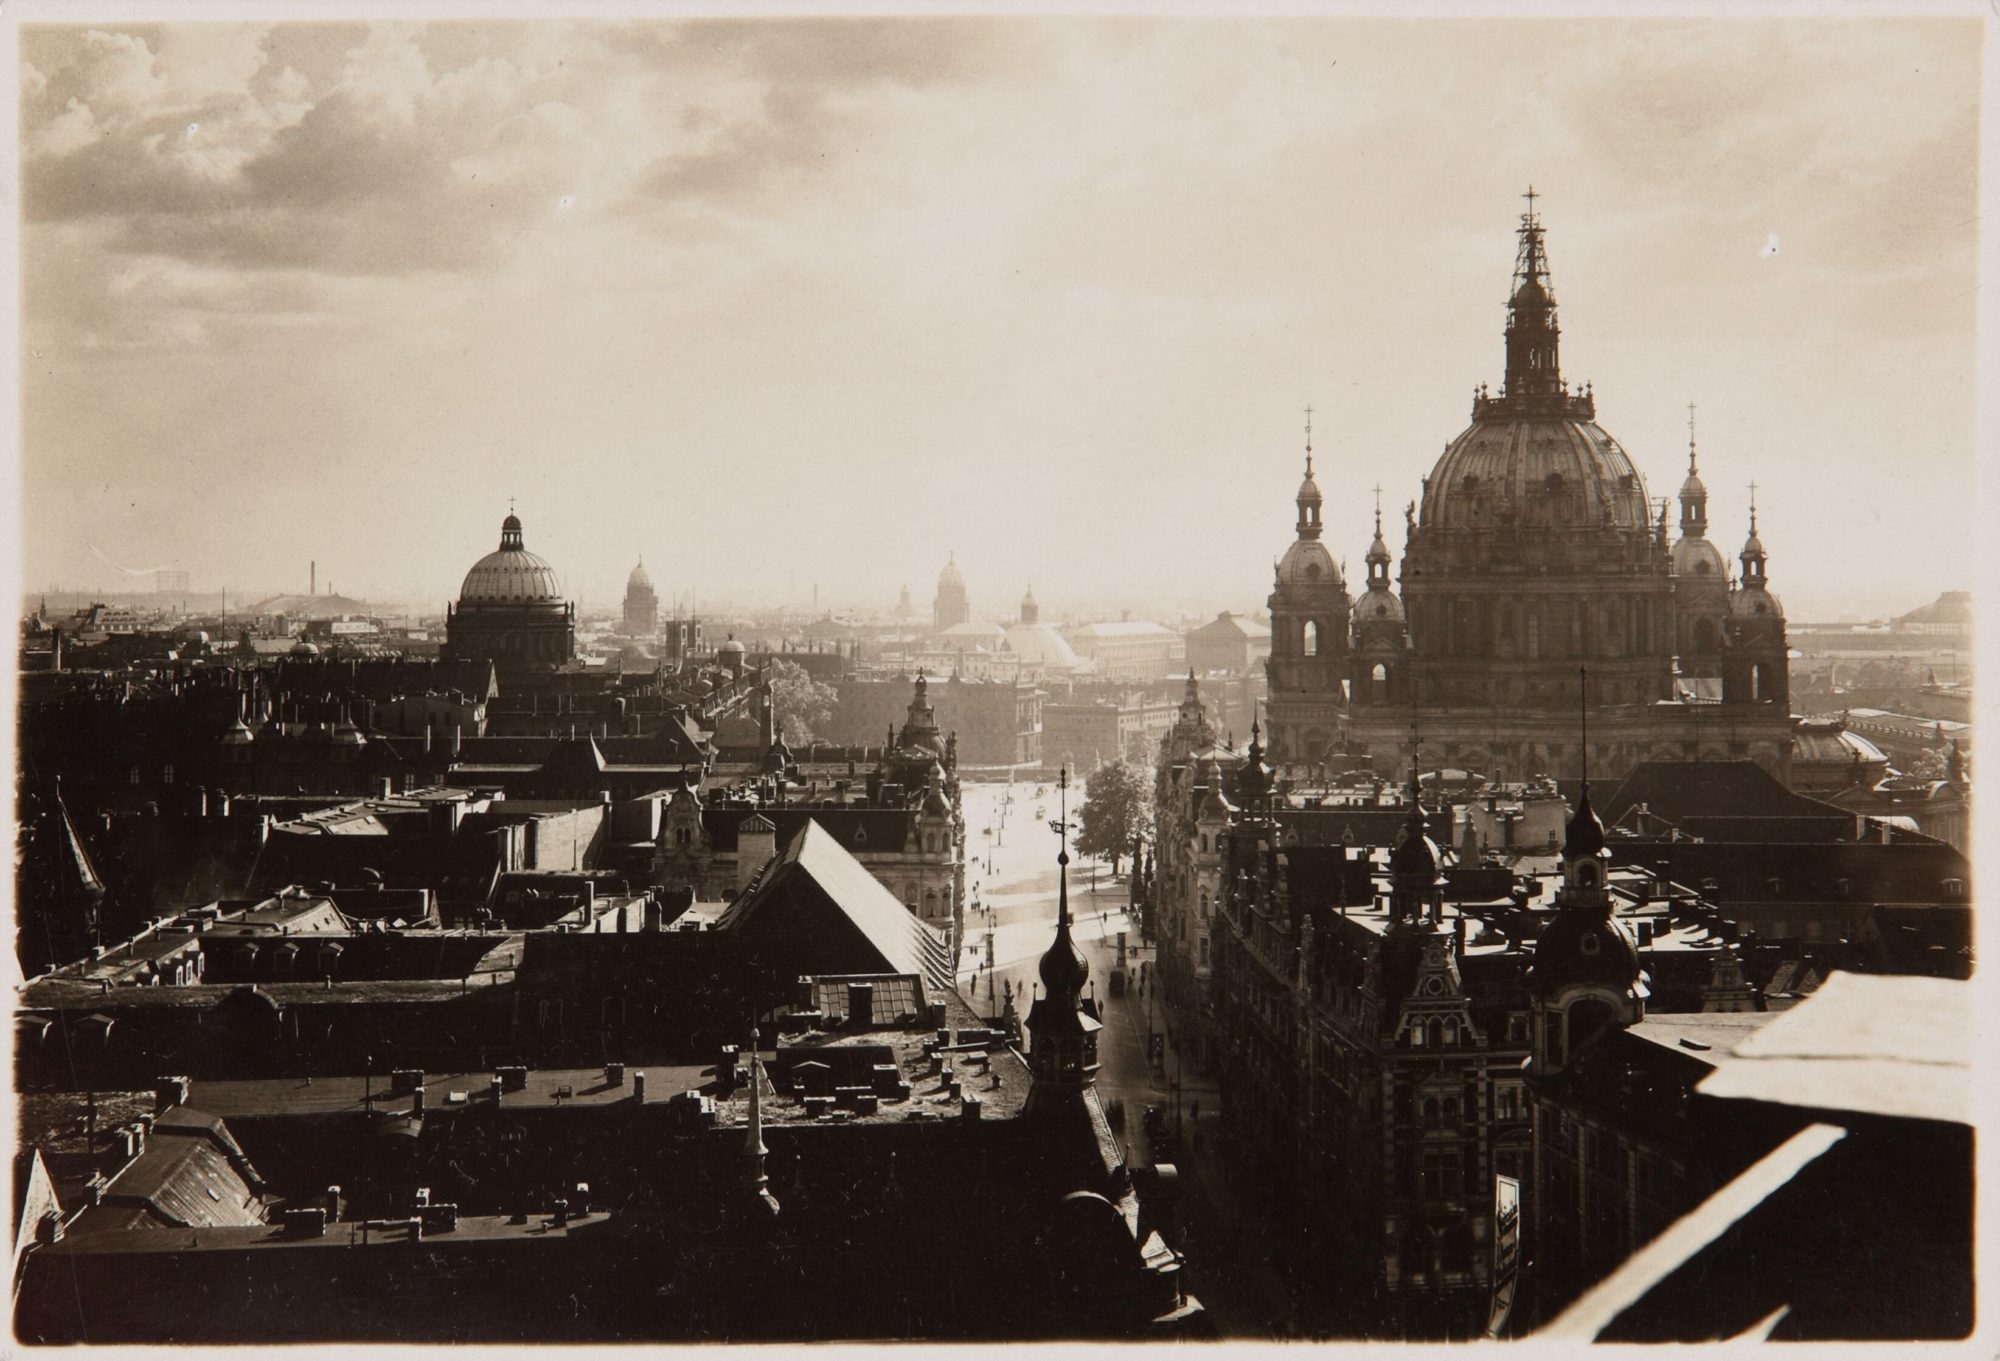 Photograph of Berlin in 1920